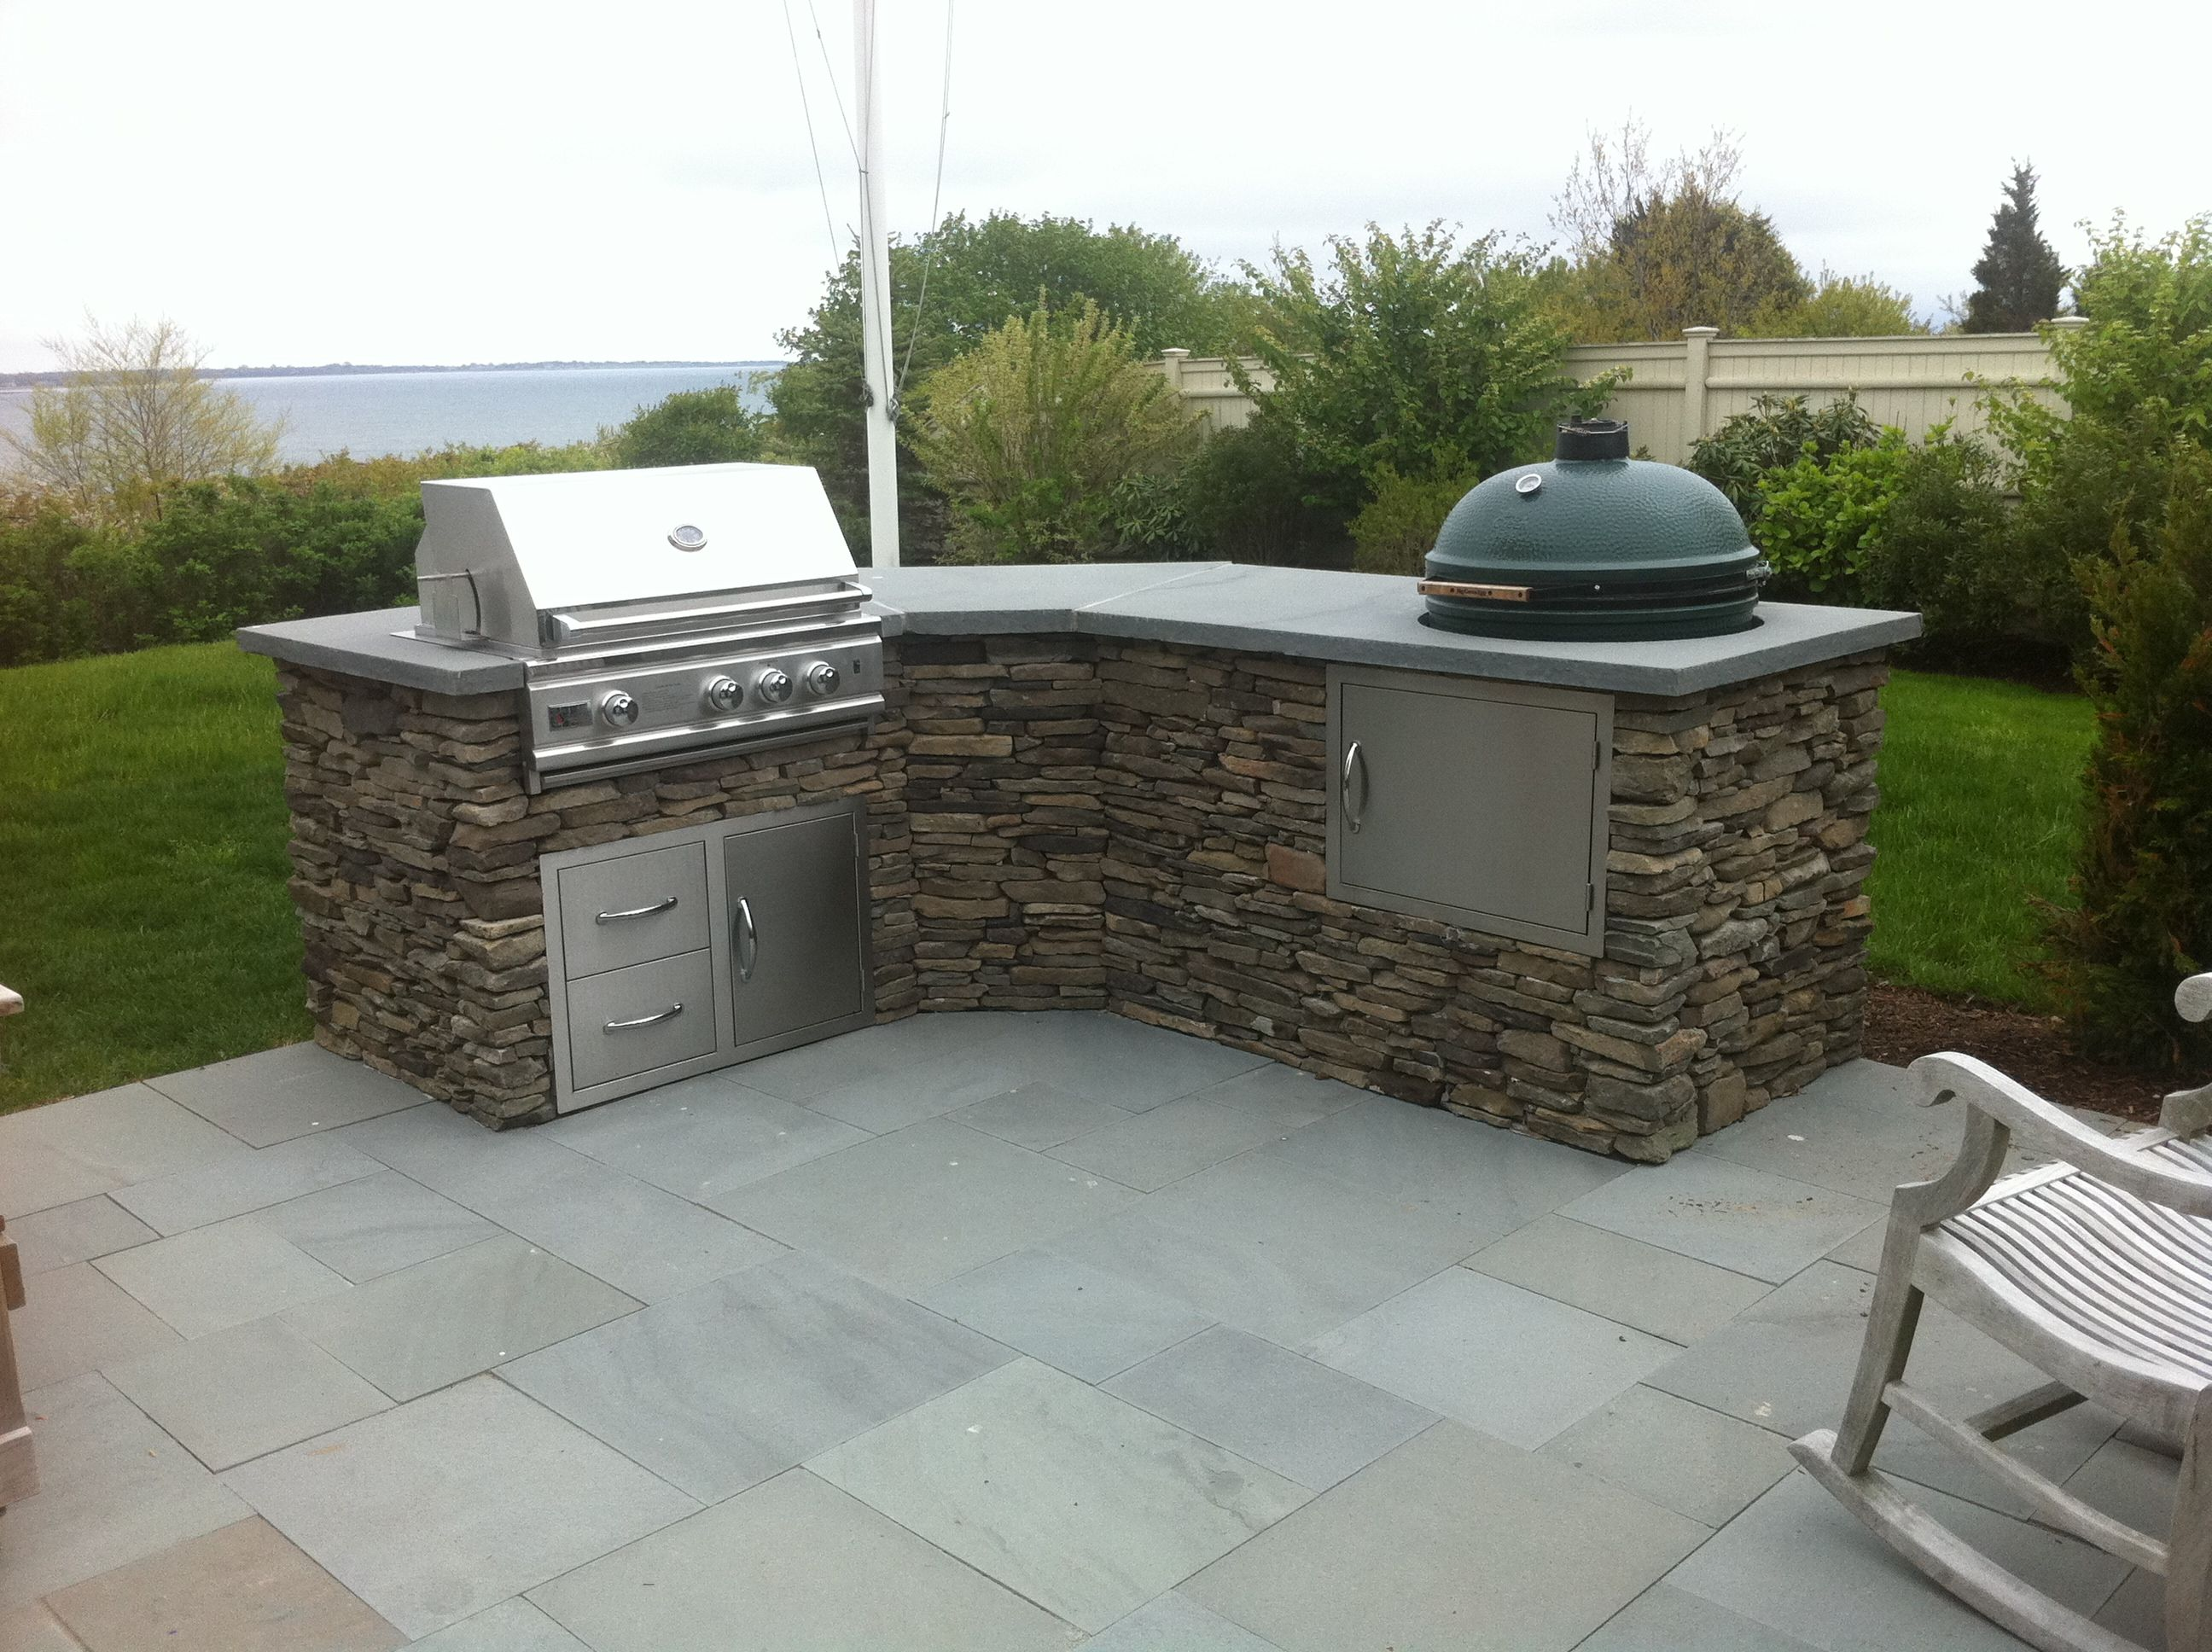 Big Green Egg Outdoor Küche Tranquil Lowes Small Outdoor Kitchen With Big Green Egg Outdoor